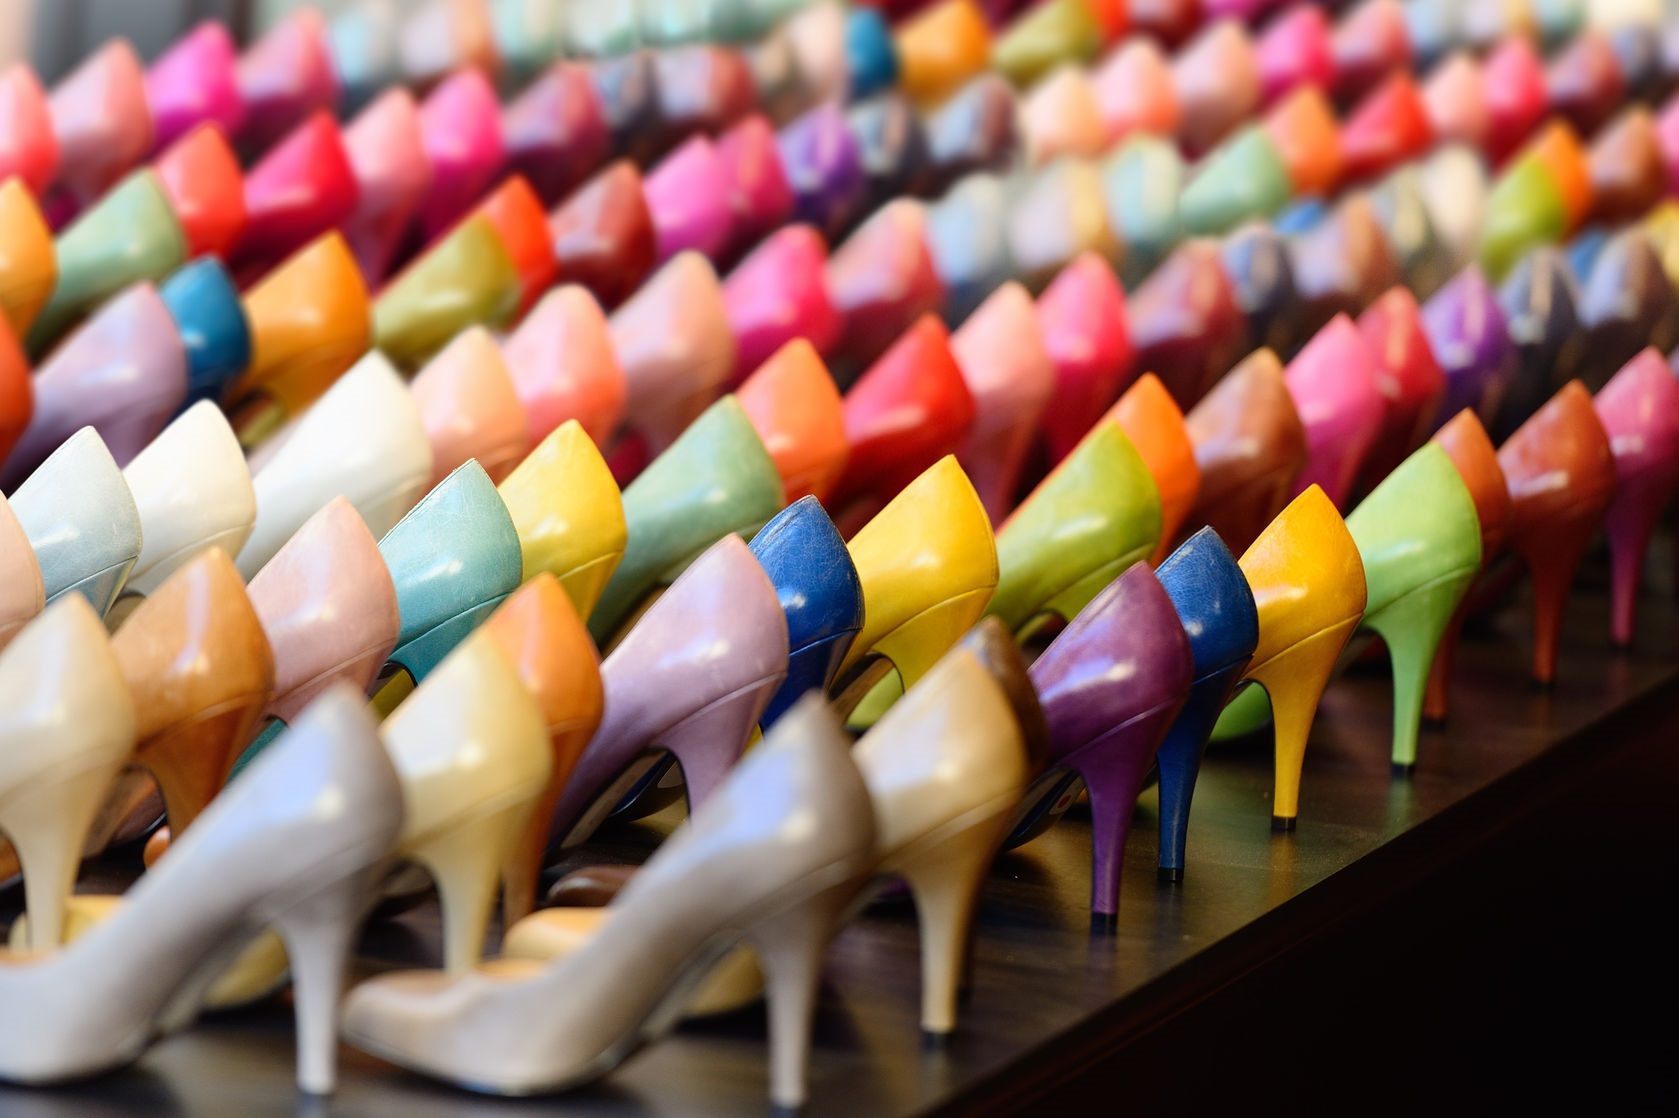 Shoes in Shop Window by Connel Design via 123RF.com